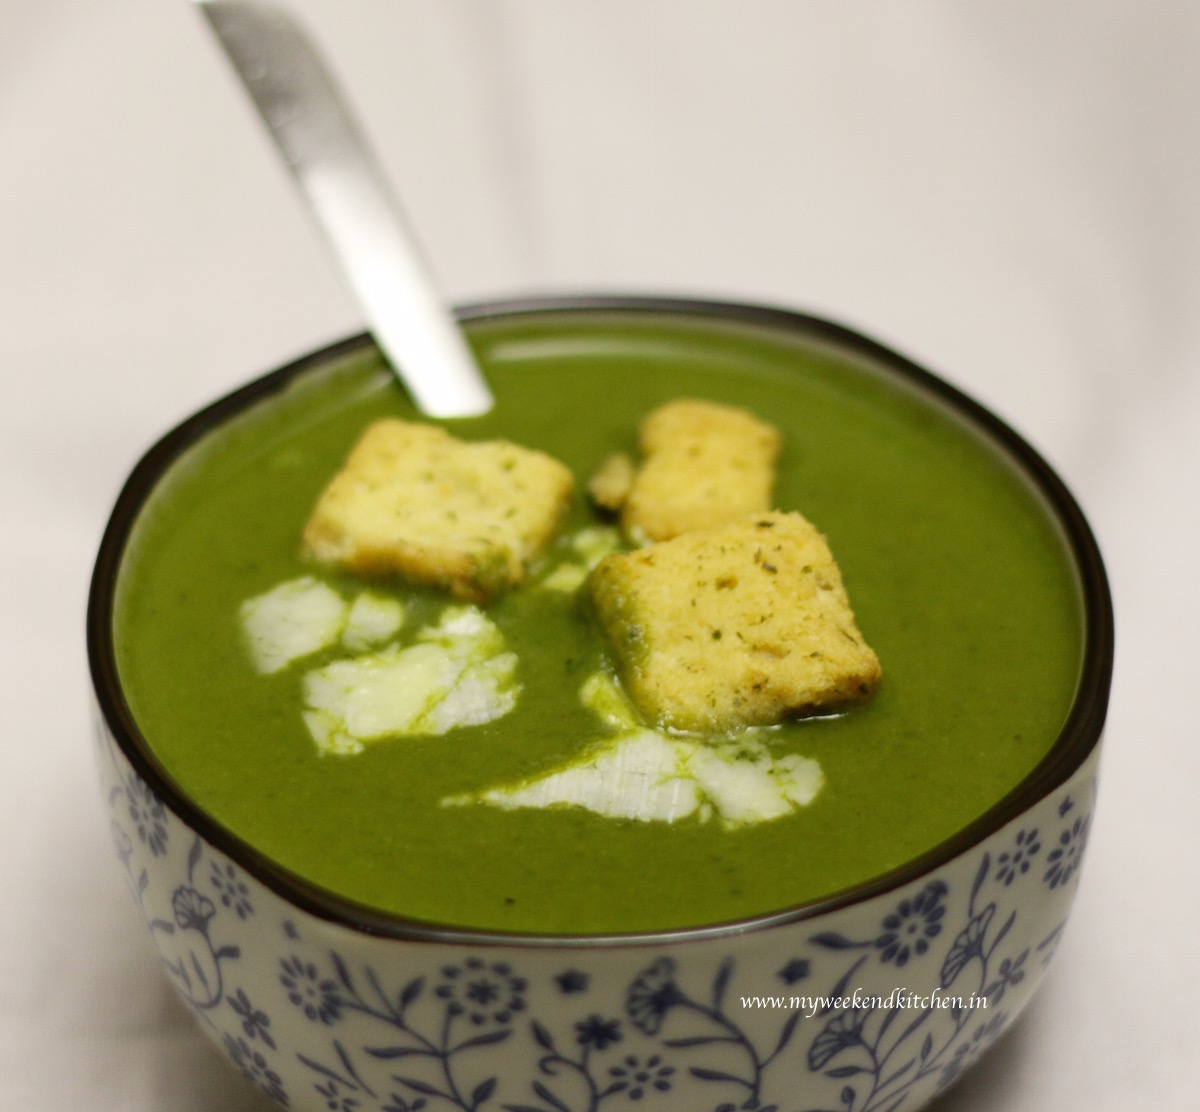 cream of spinach soup, palak ka shorba